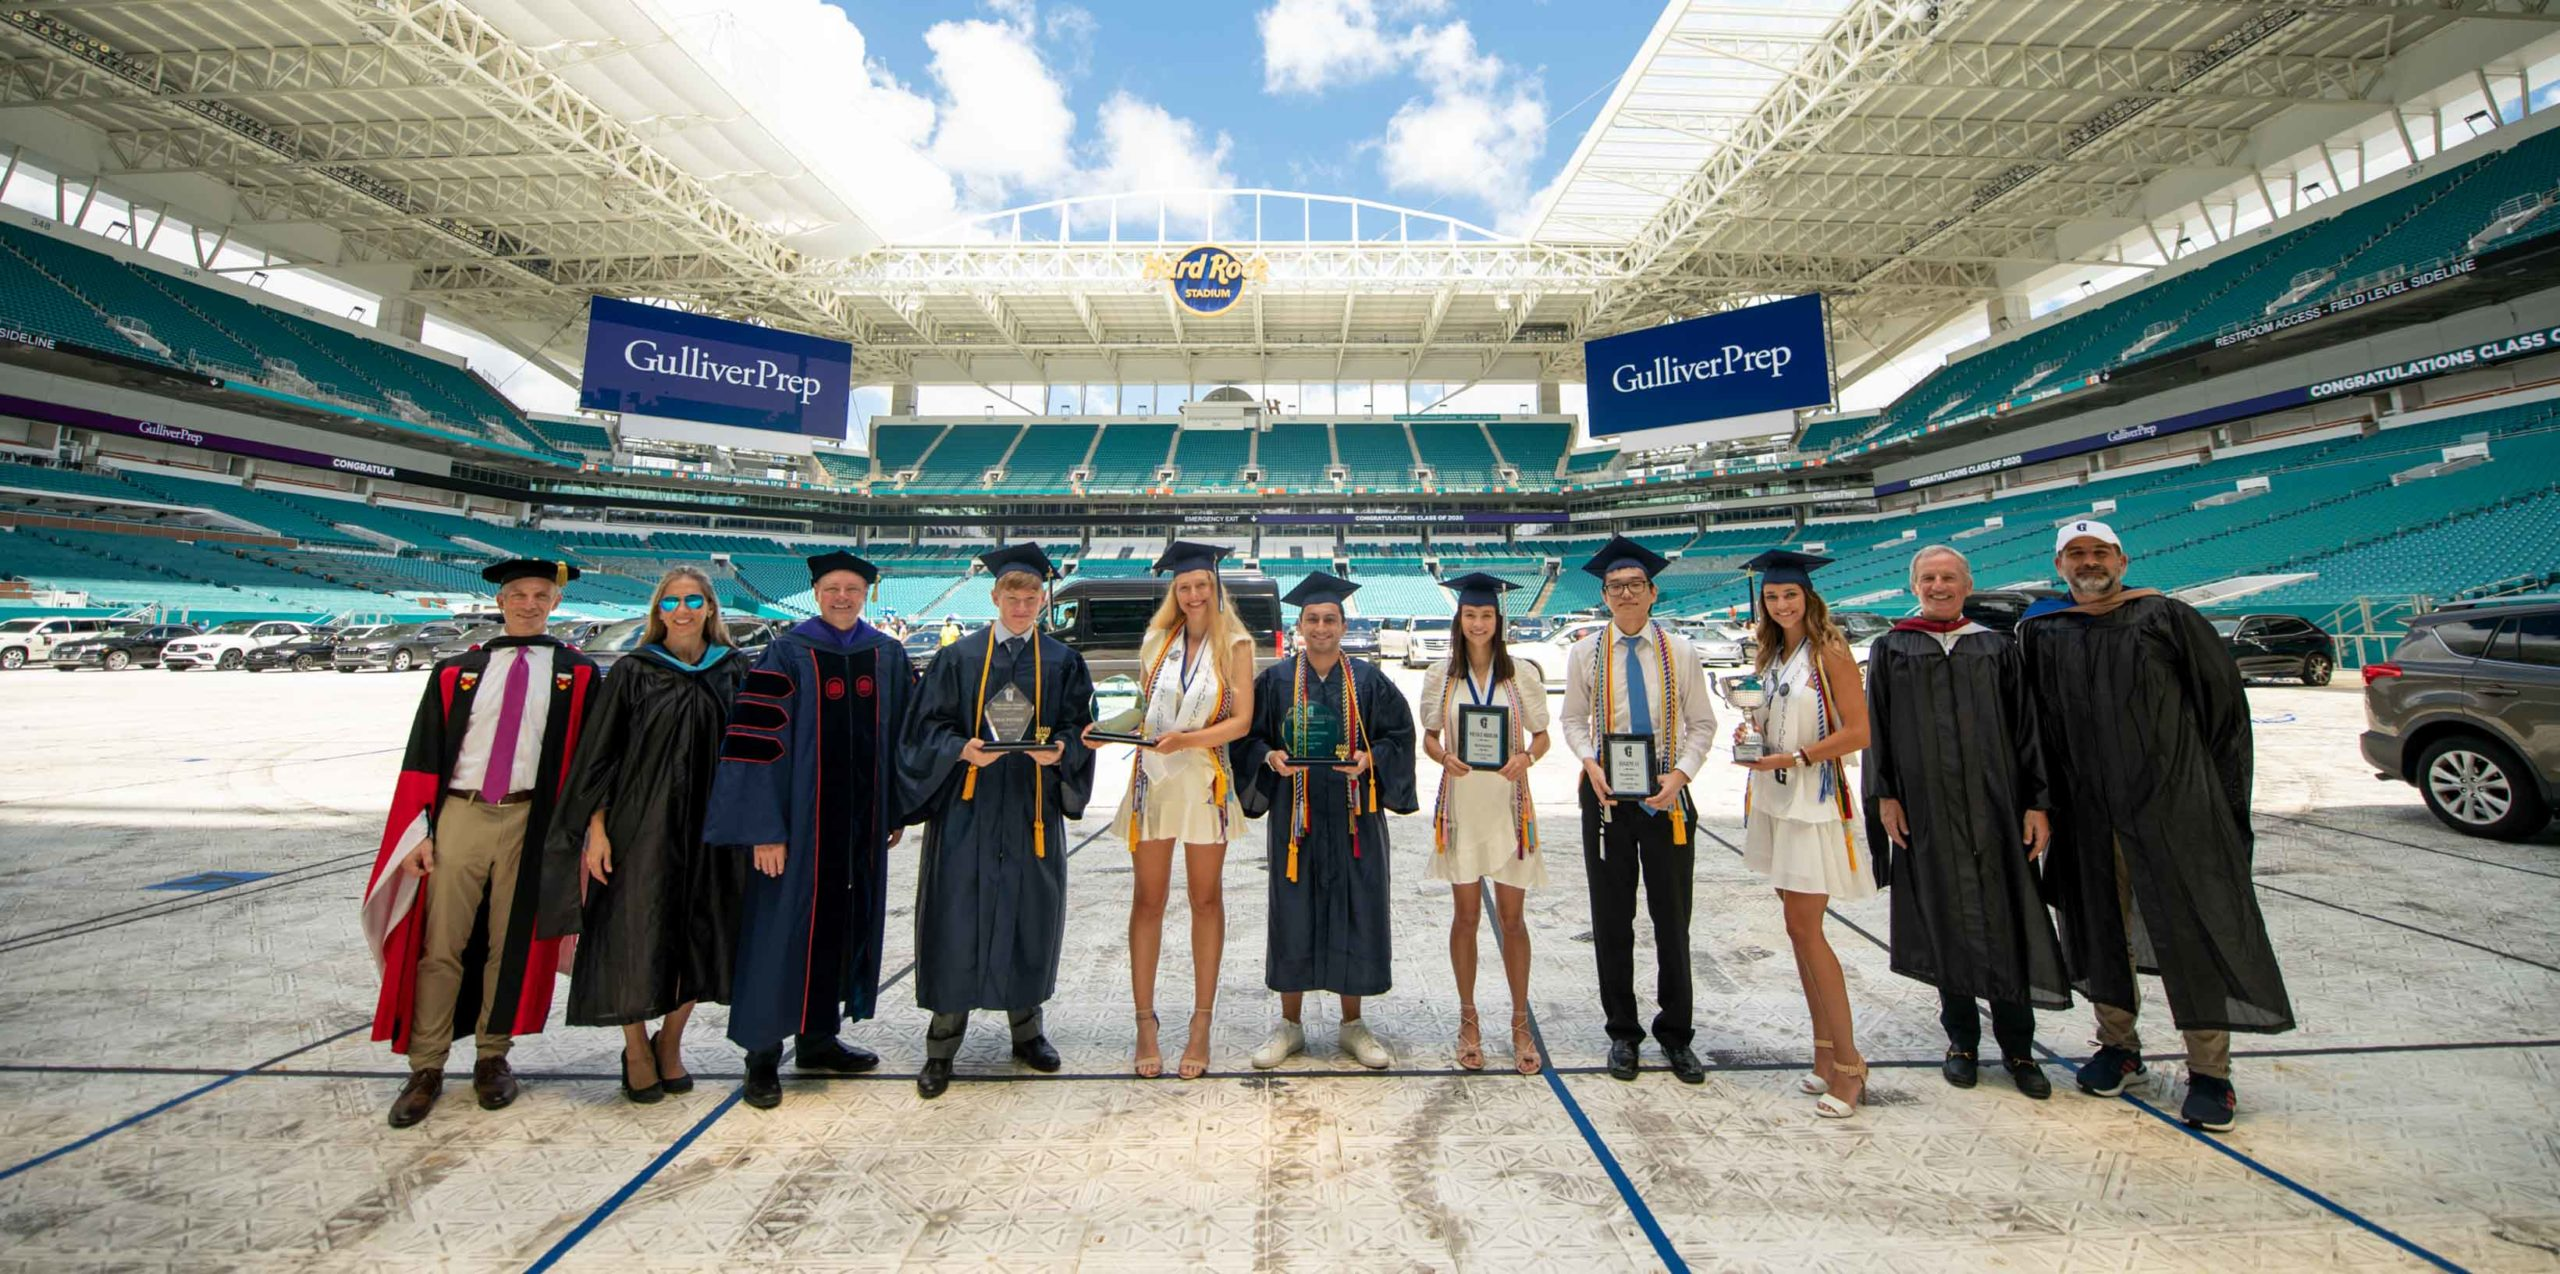 Class presidents and teachers standing in stadium